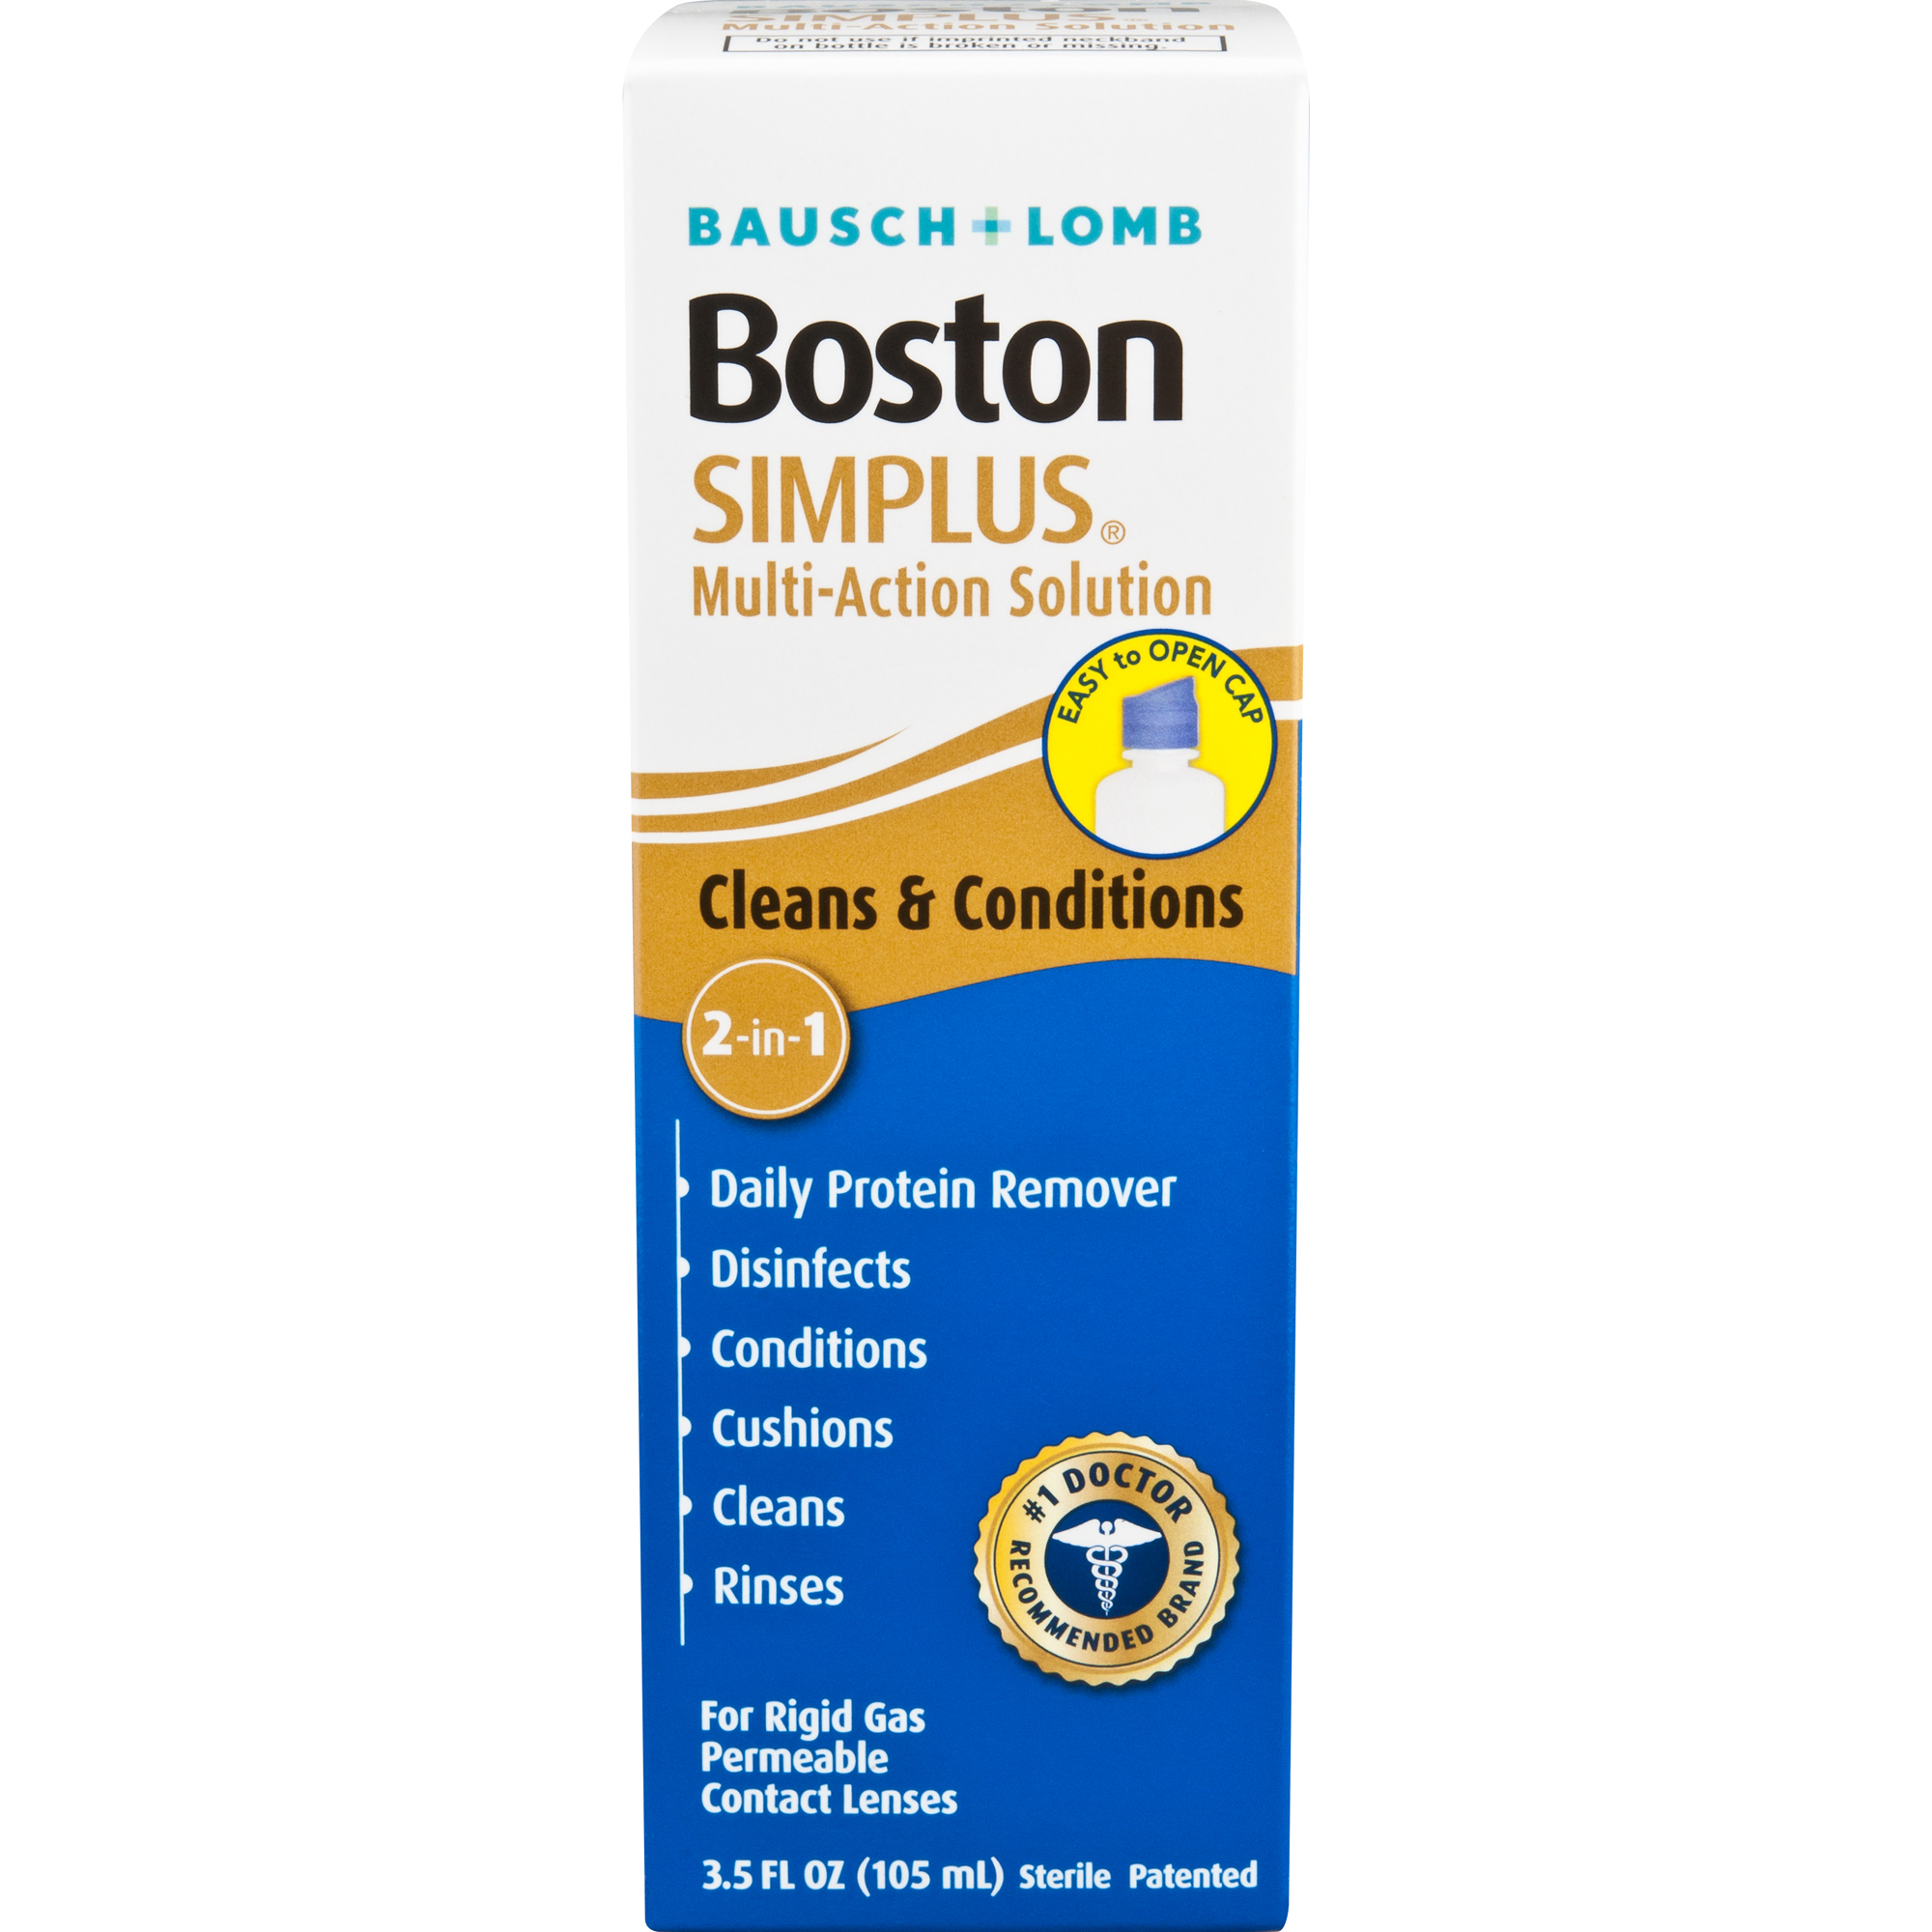 Bausch & Lomb Boston Multi-Action Solution with Daily Protein Remover Simplus, 3.5 fl oz